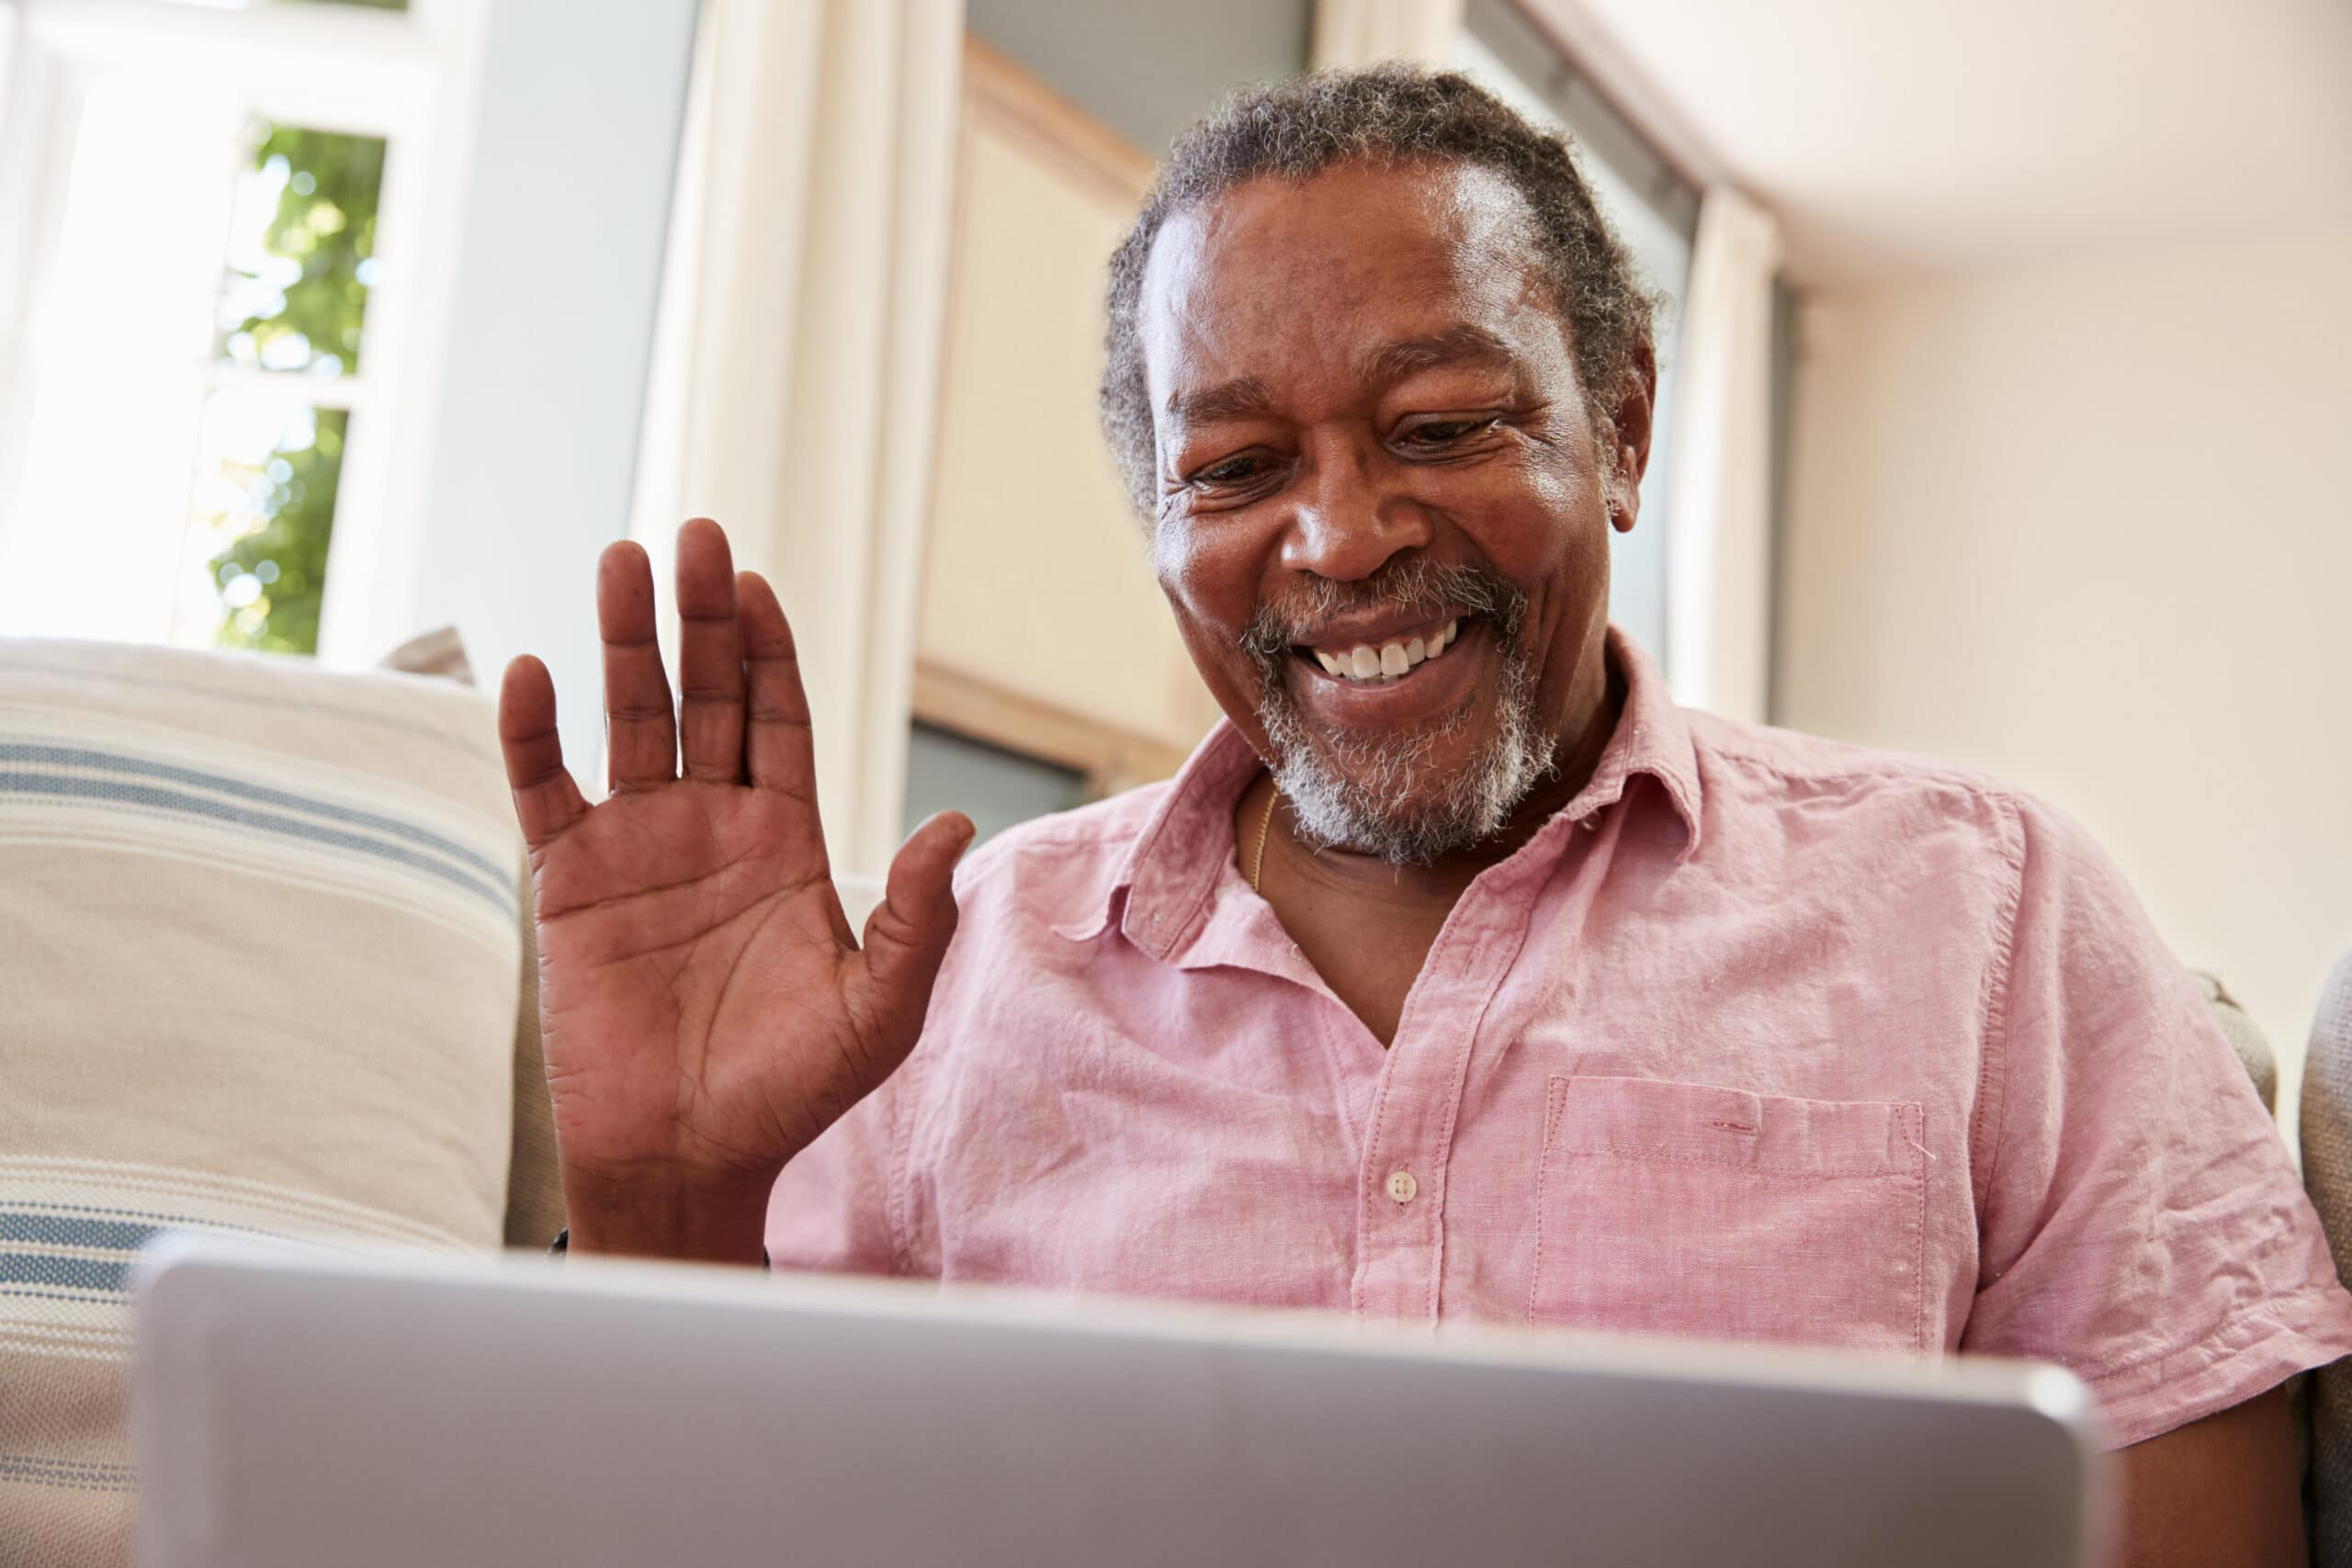 Older man smiles and raises his hand while on a remote session on the computer